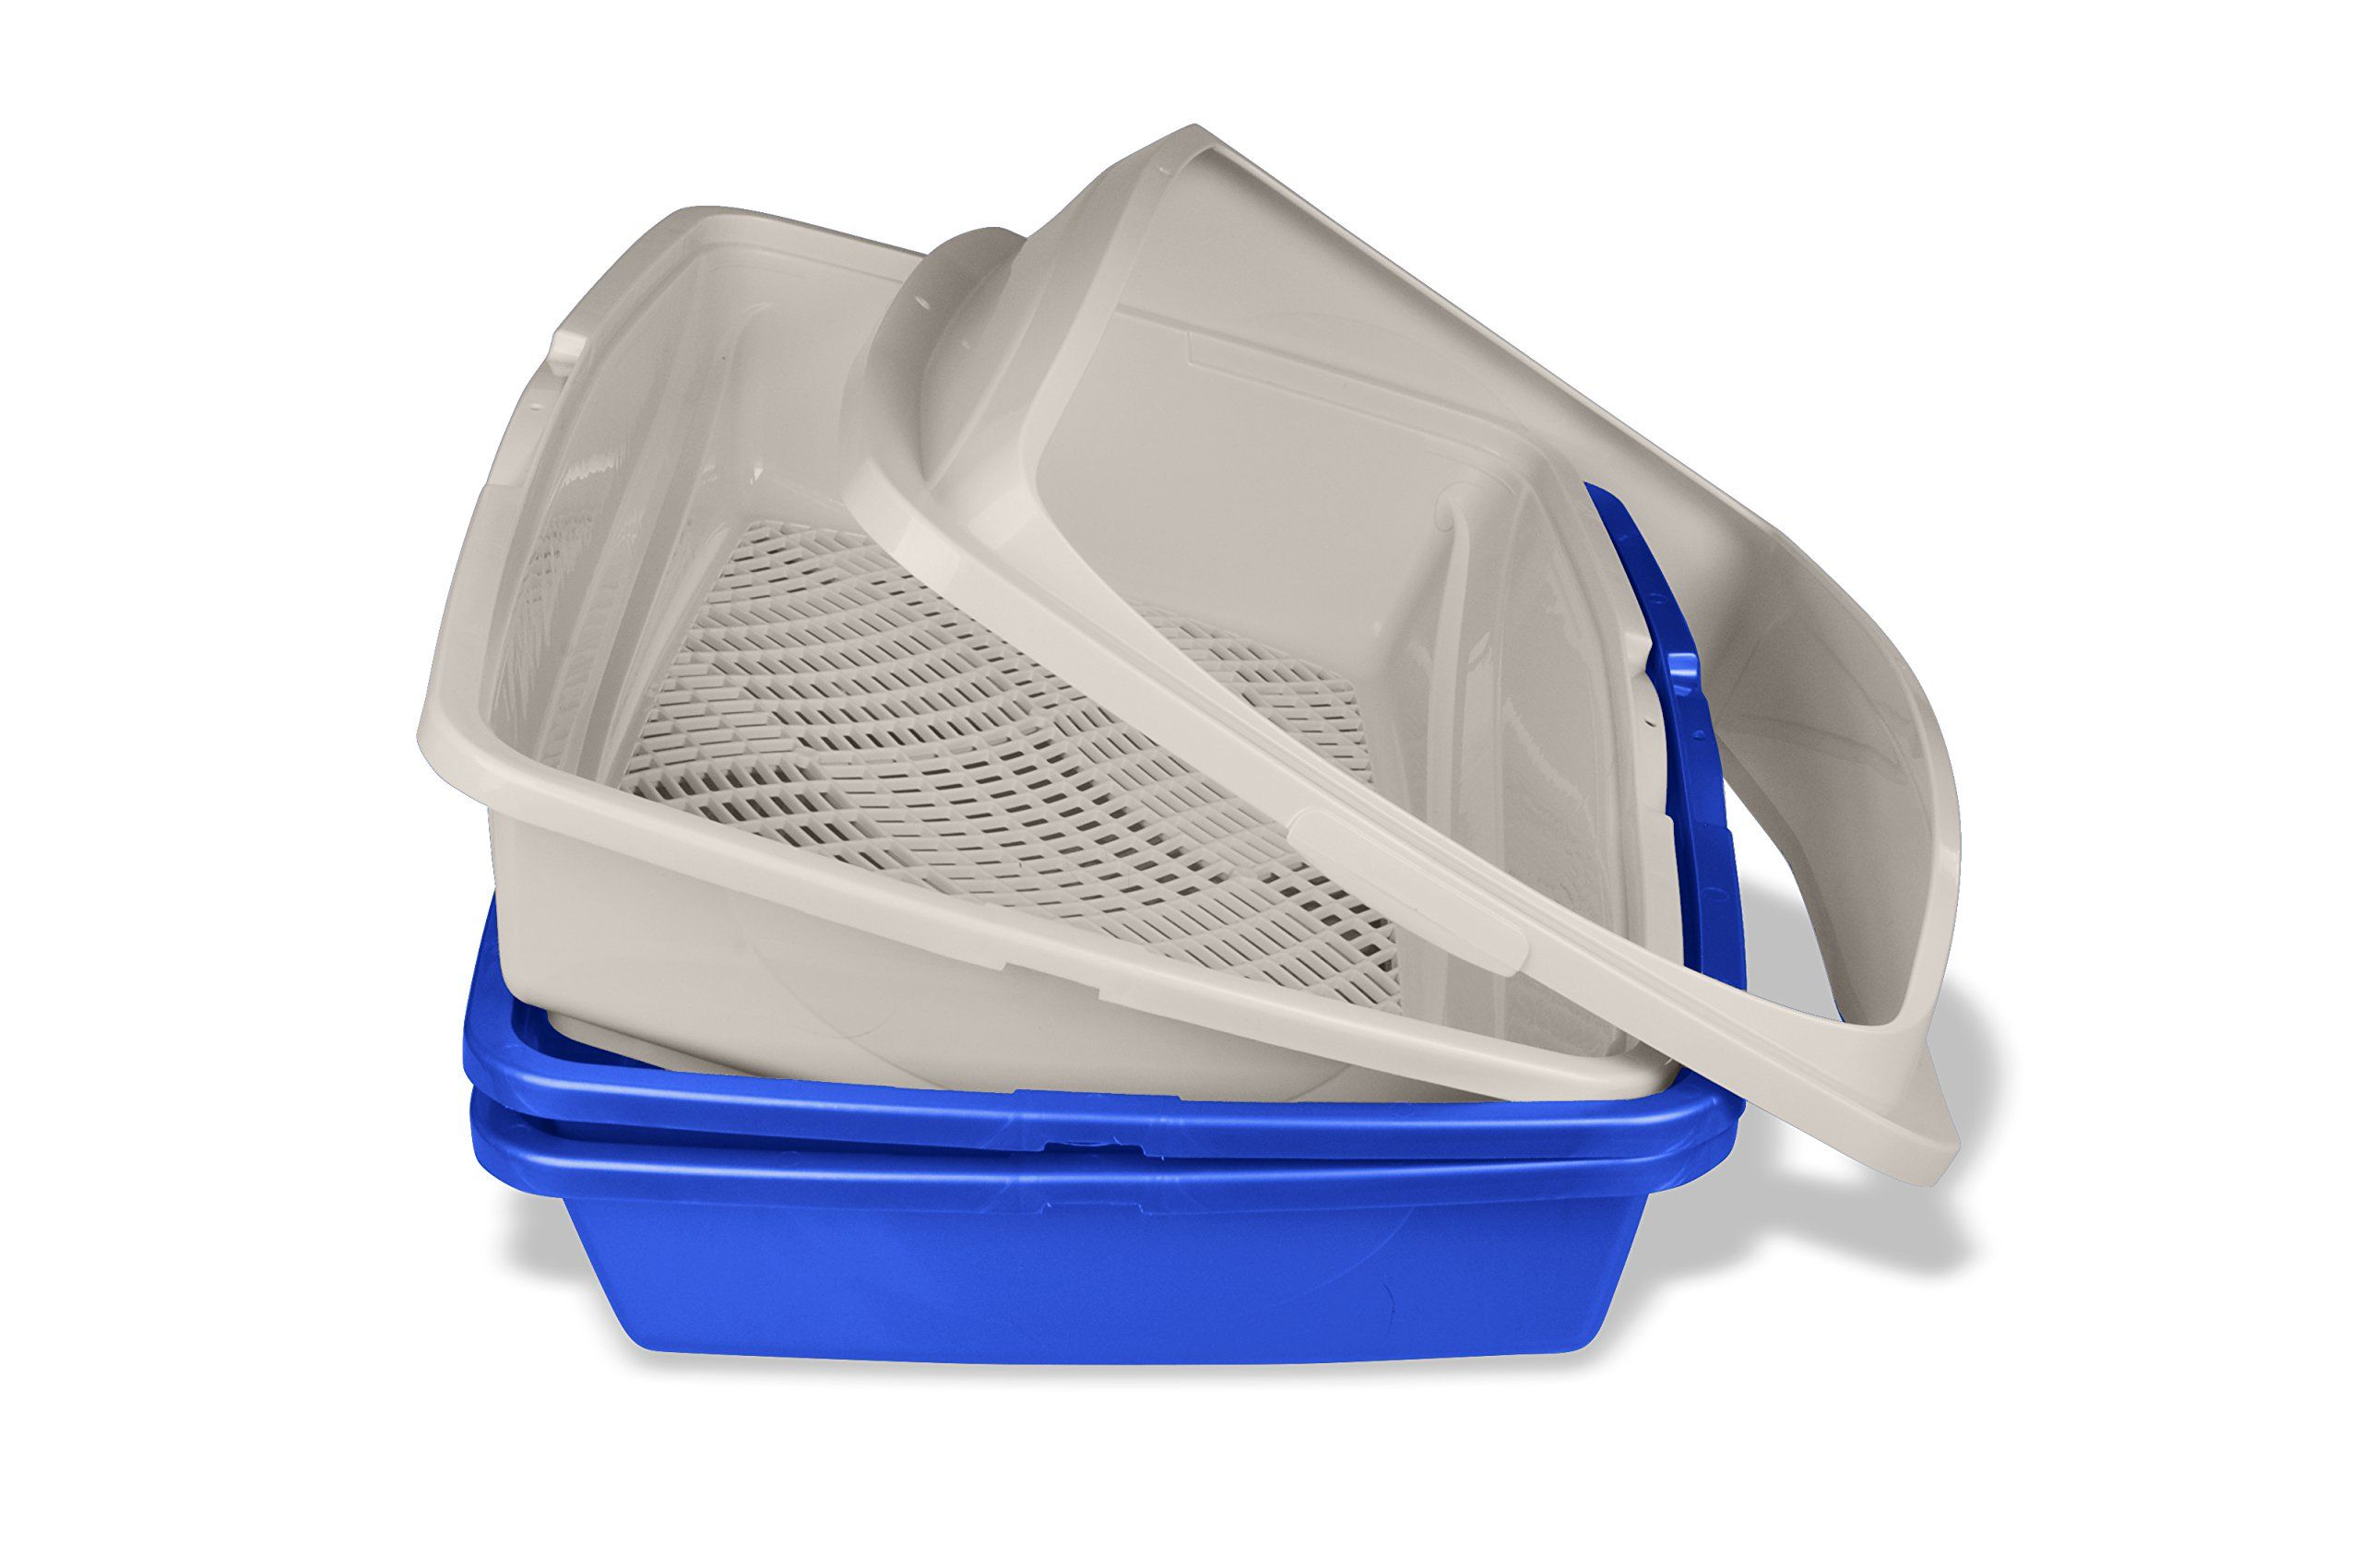 Van Ness Cp5 Sifting Cat Pan Litter Box With Frame Assorted Colors Information Could Be Located By Clicking On The Image T Litter Box Litter Cat Litter Pan